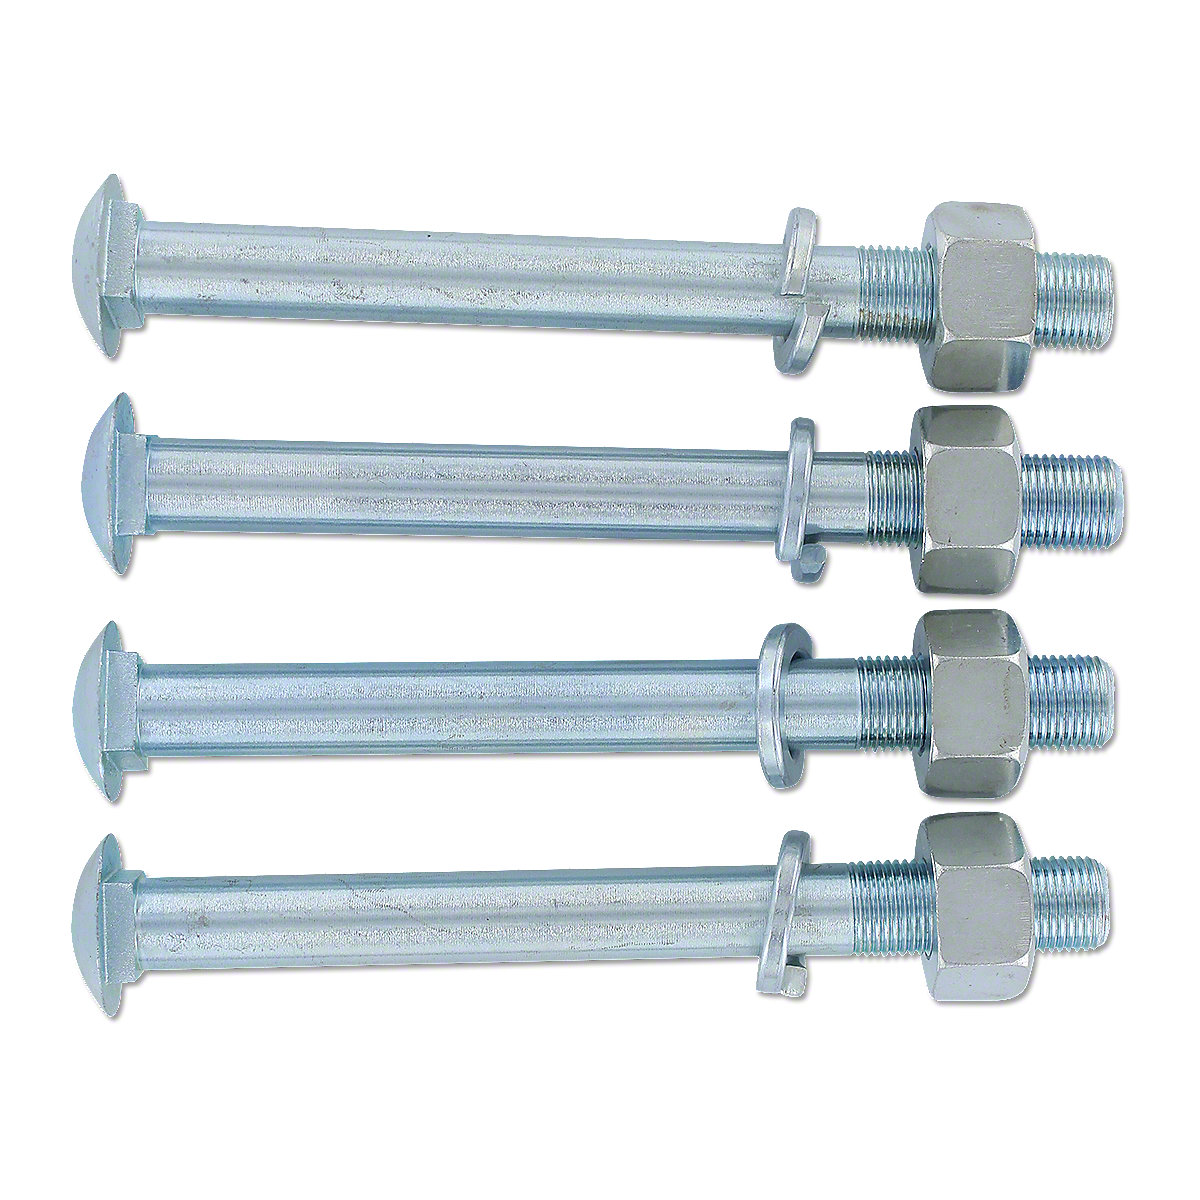 8n Tractor Fender Bolts : Abc fender bolt kit